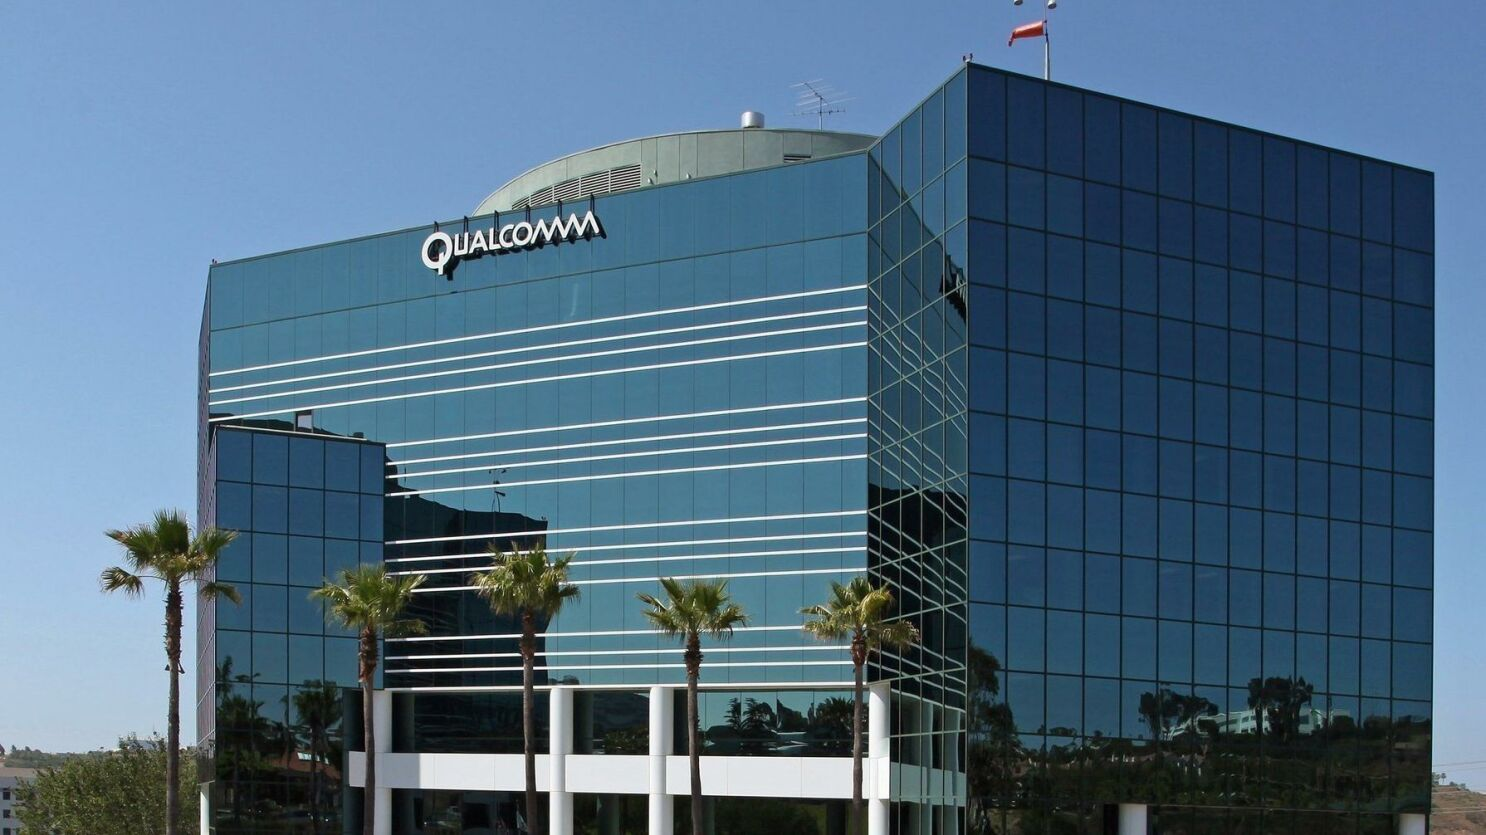 Qualcomm makes case for trimming the size of class action lawsuit over patent fees